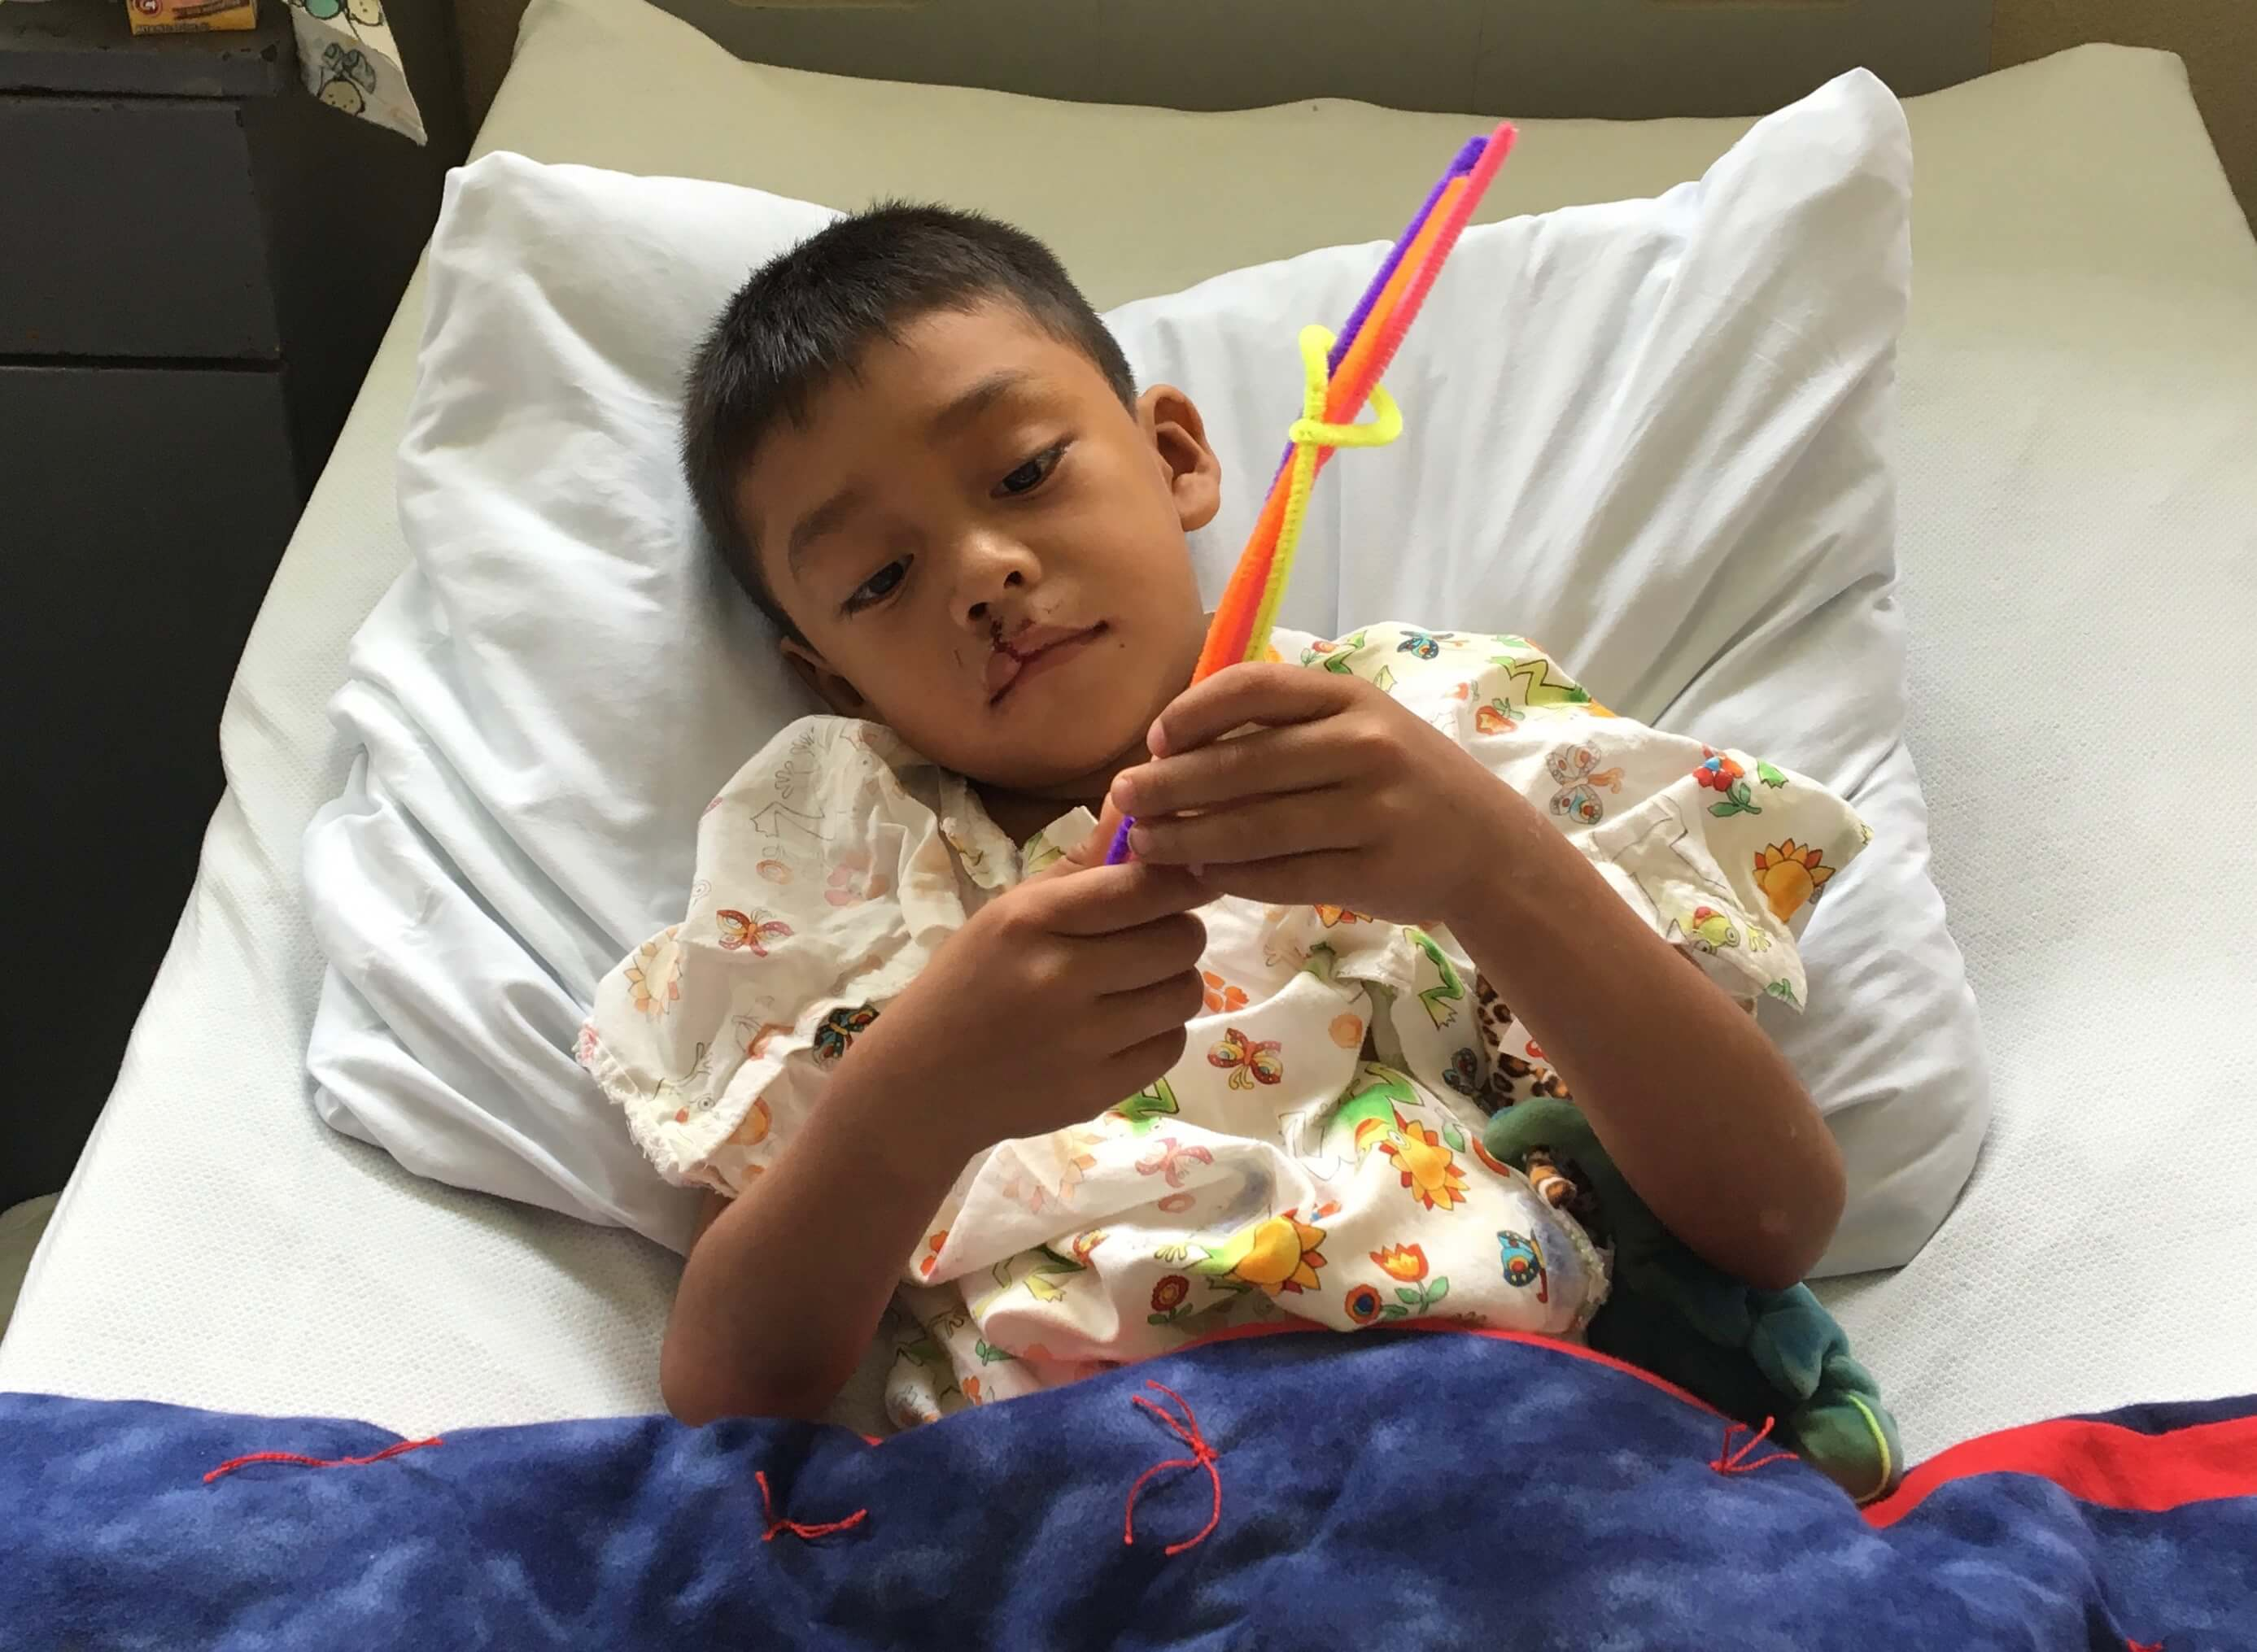 This child plays with pipe cleaners in his ward bed.